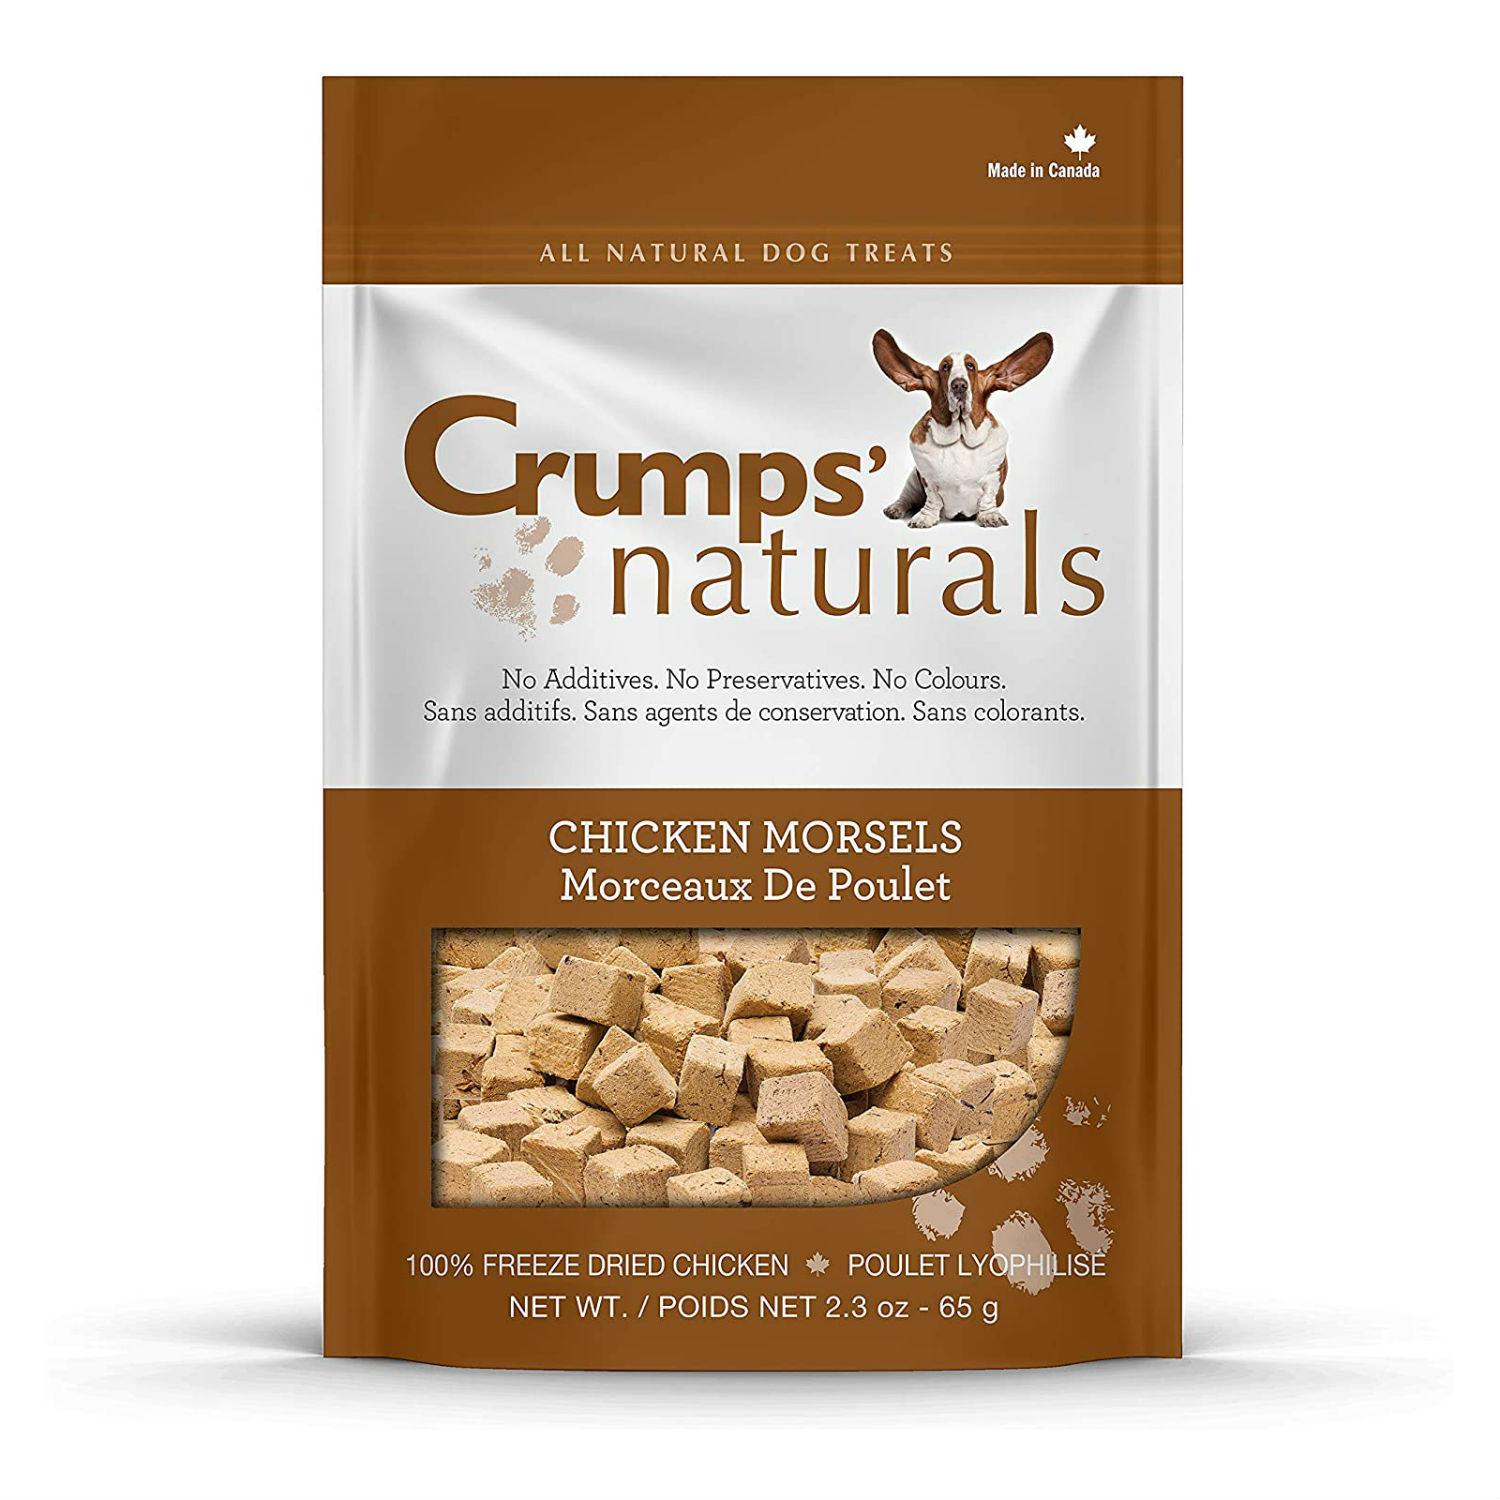 Crumps' Naturals Freeze Dried Morsels Dog Treat - Chicken